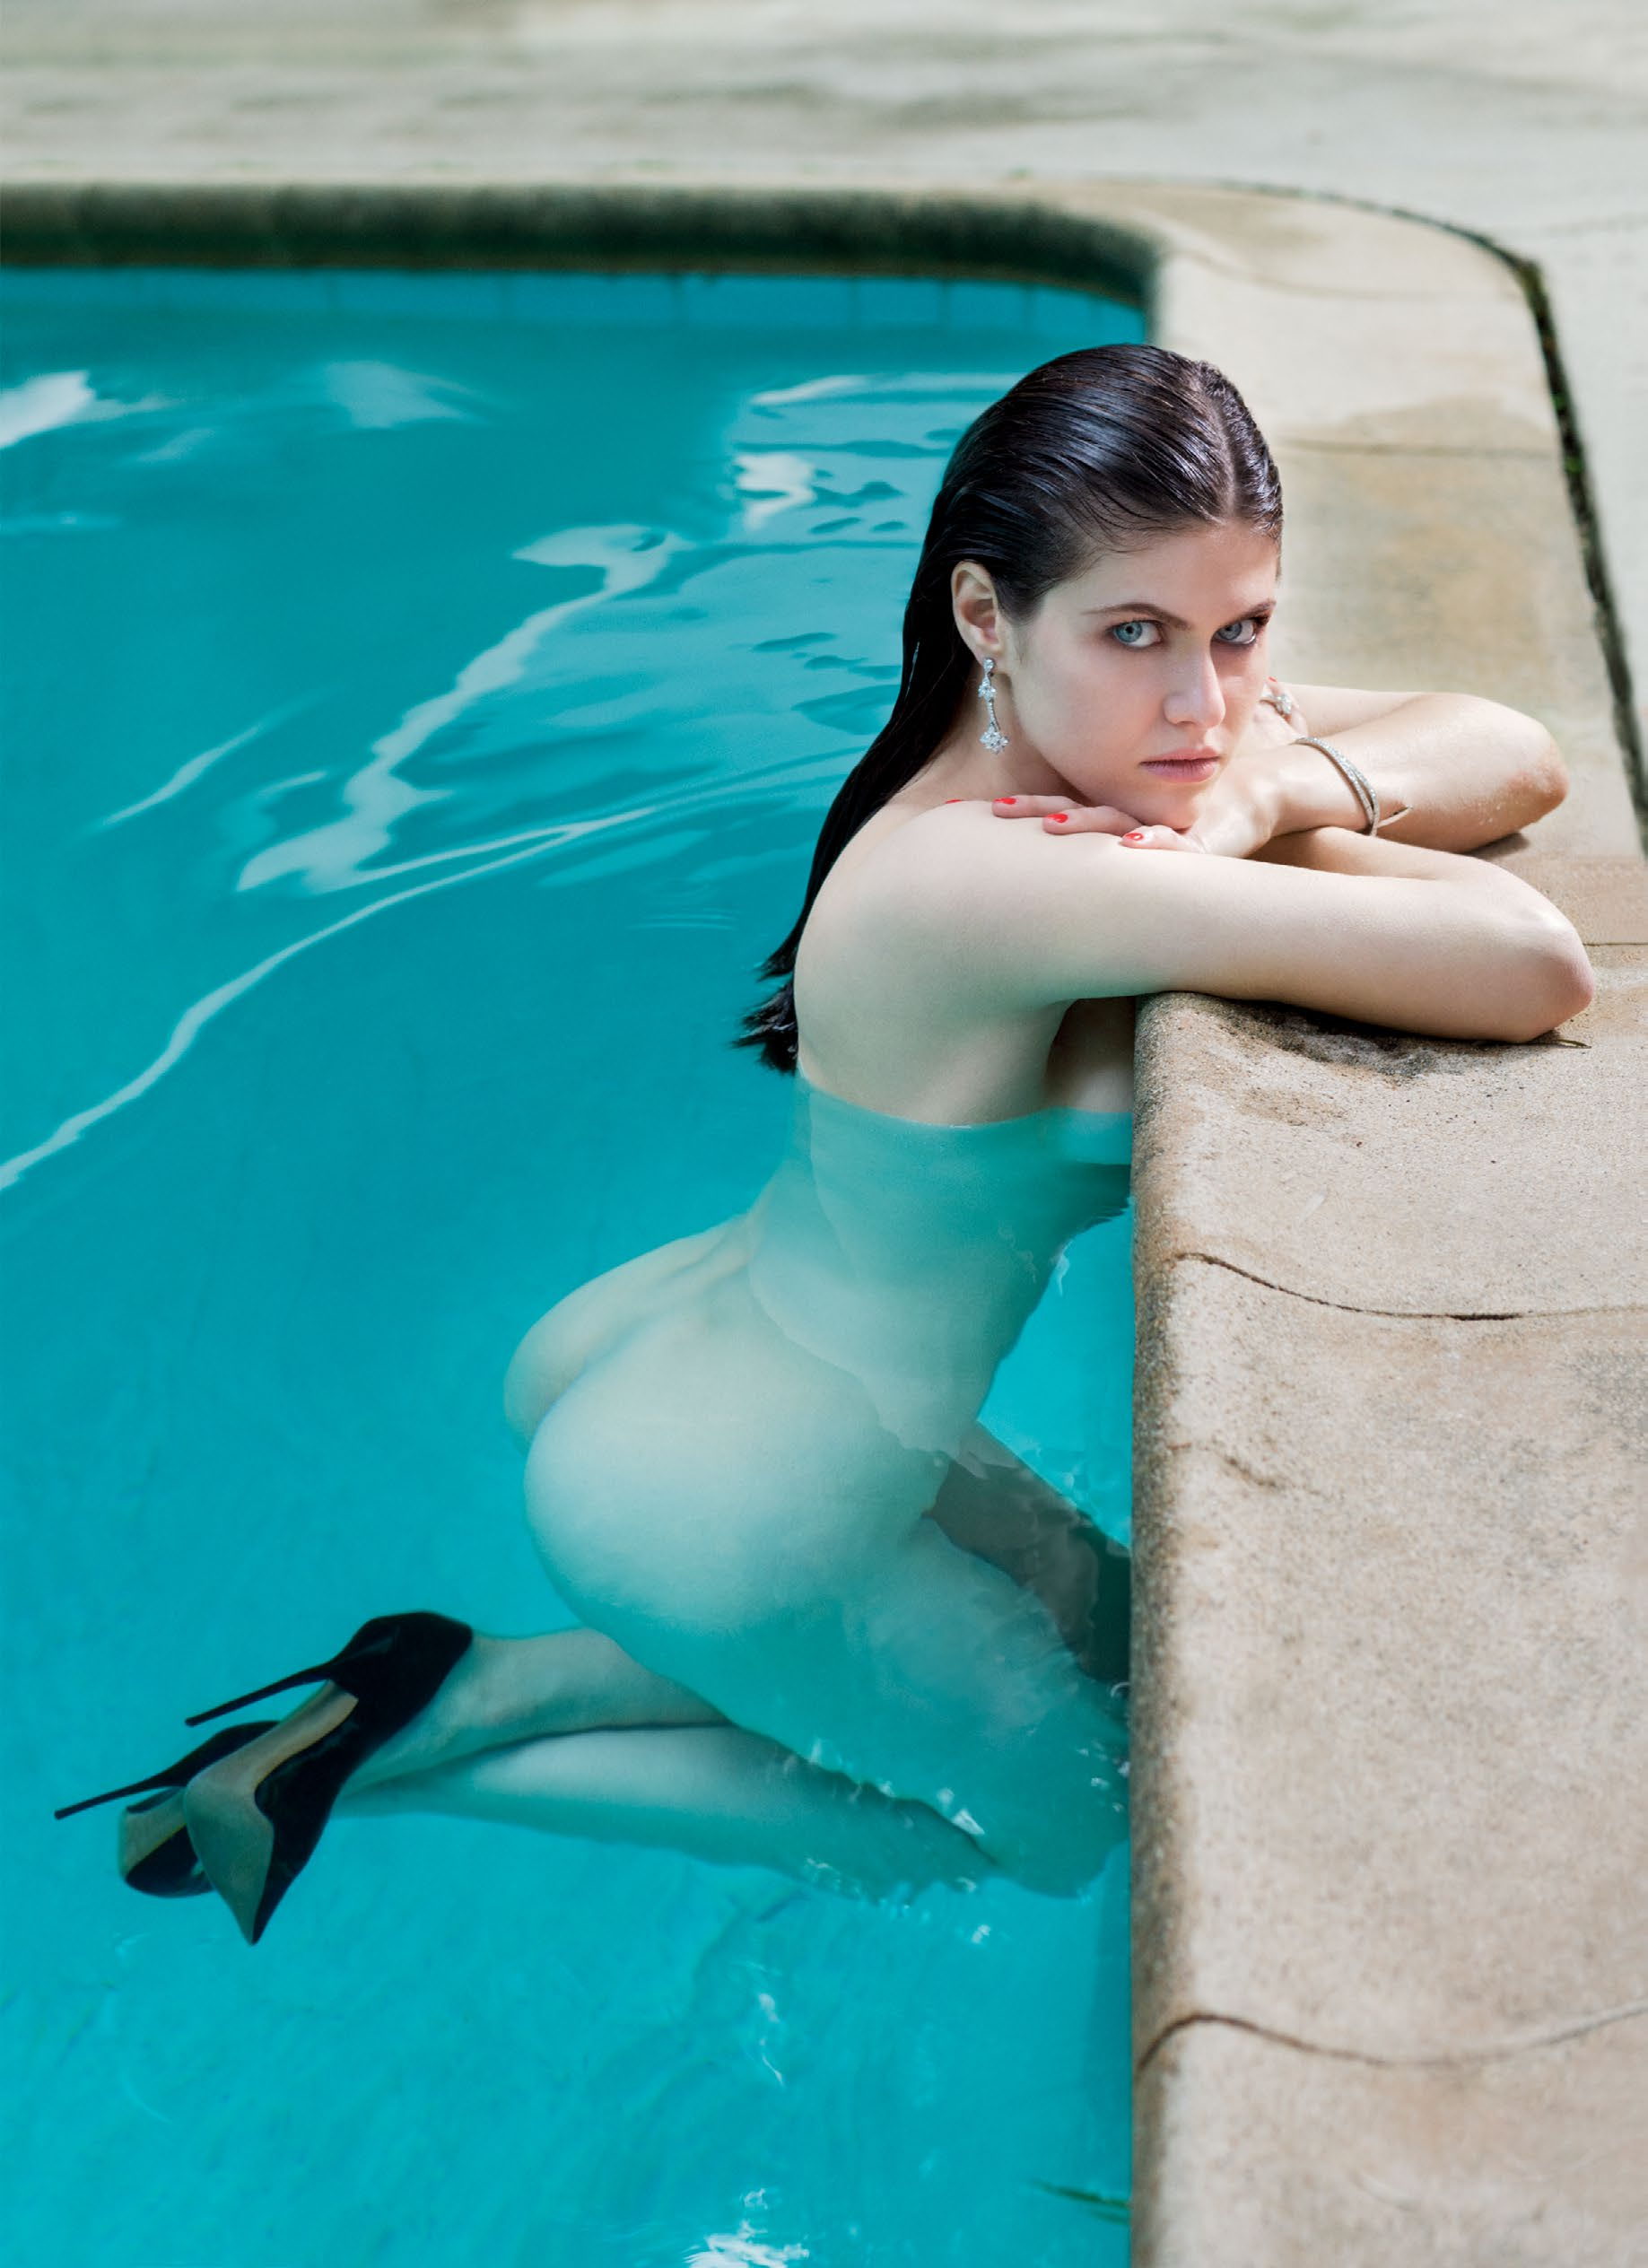 girls-nude-in-pool-wet-photo-mix-vol6-10